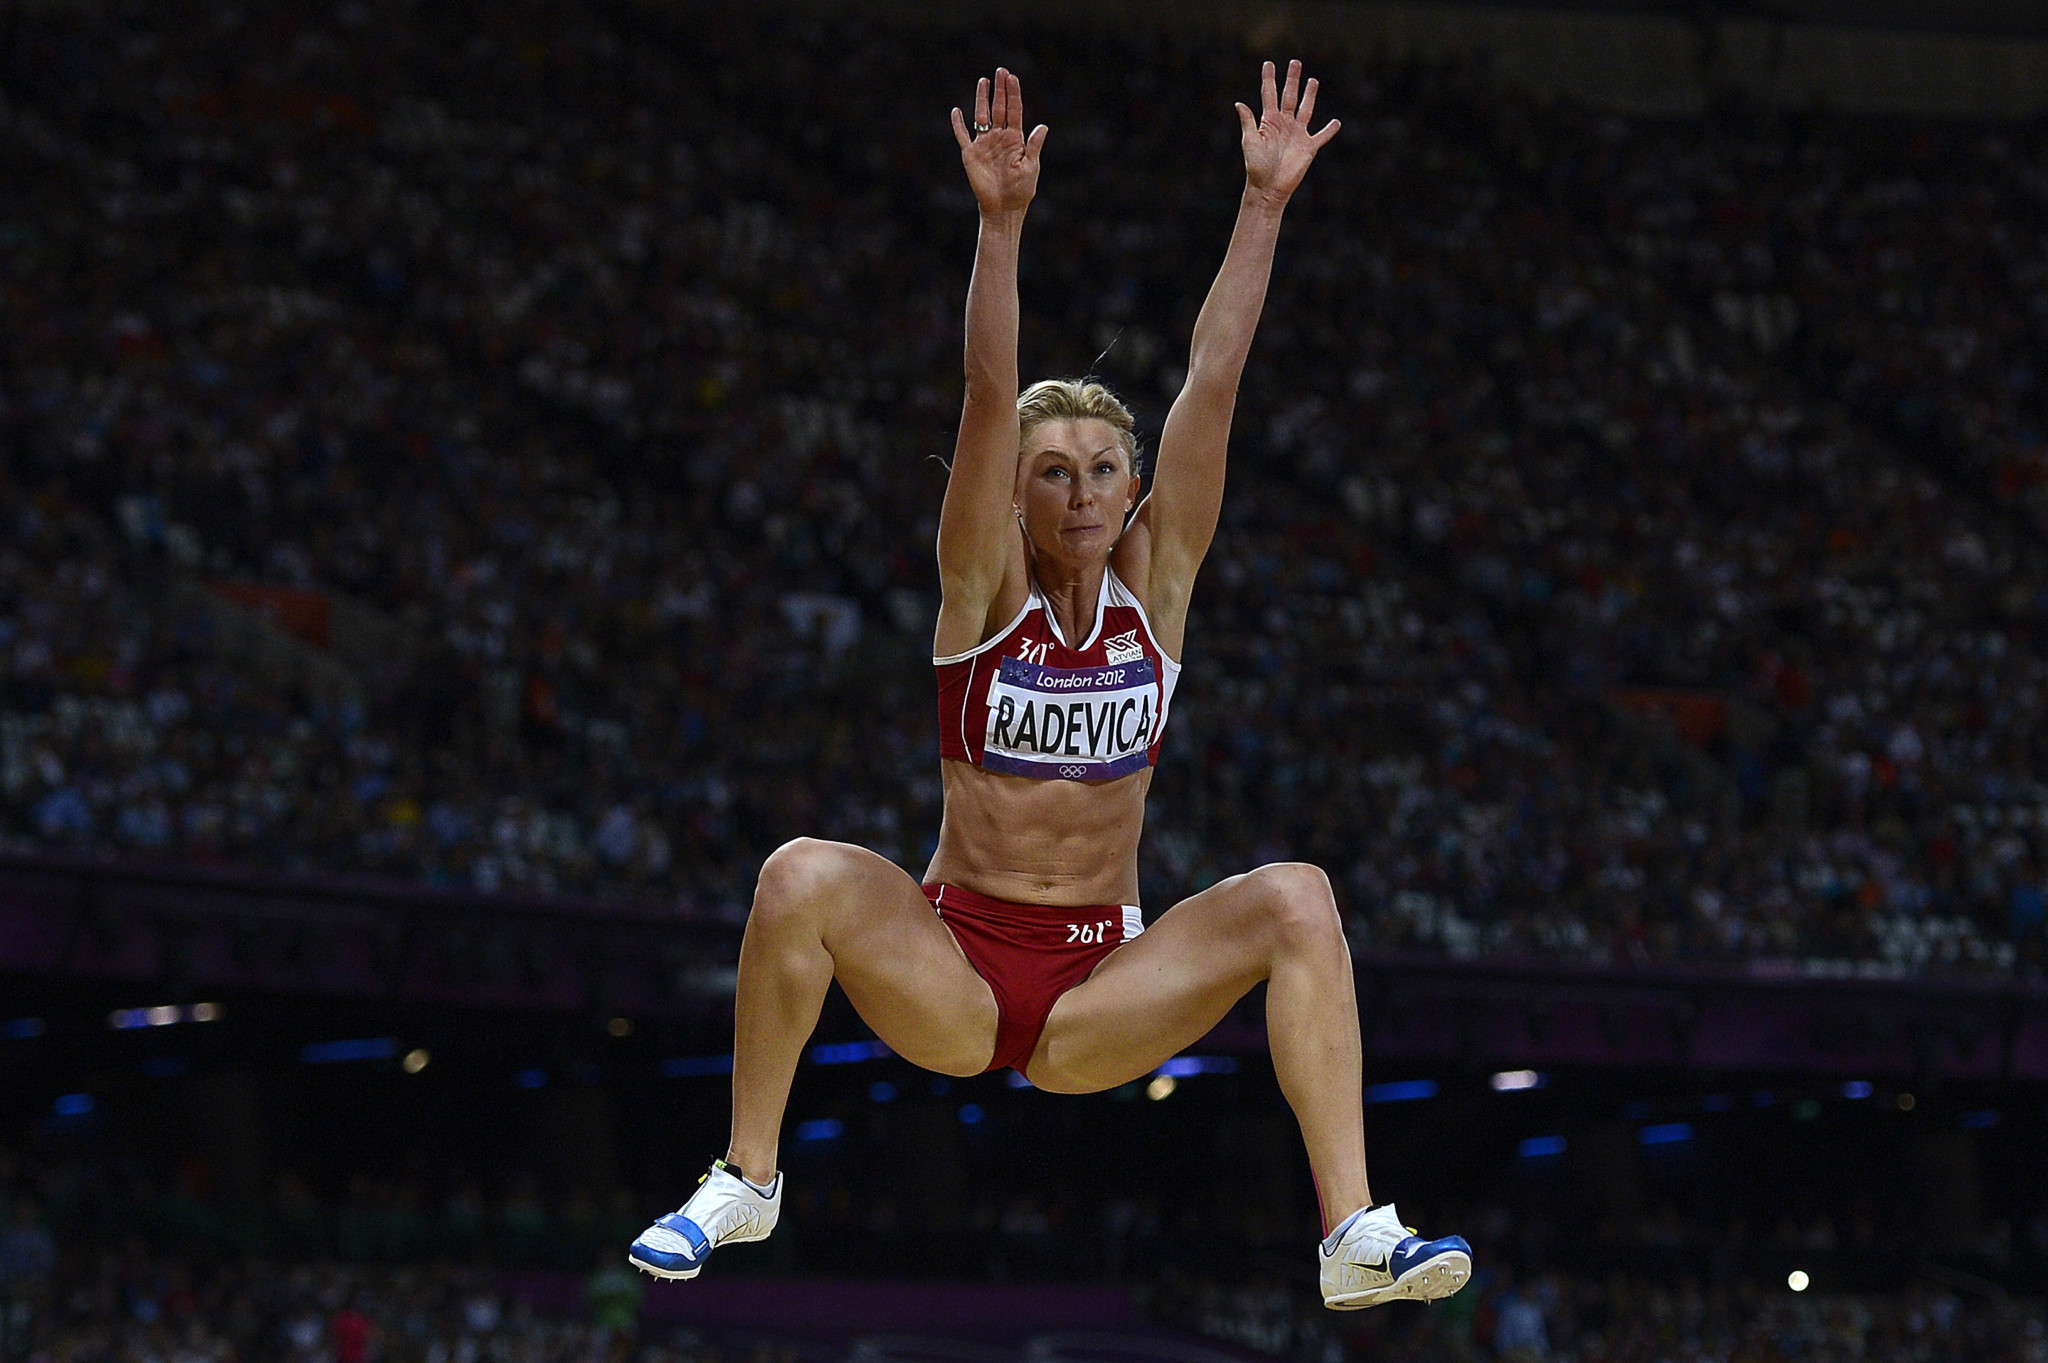 Latvian long jumper Ineta Radevica is one of latest two athletes to have been disqualified from the London 2012 Olympic Games following the retesting of her seven-year-old samples ©Getty Images